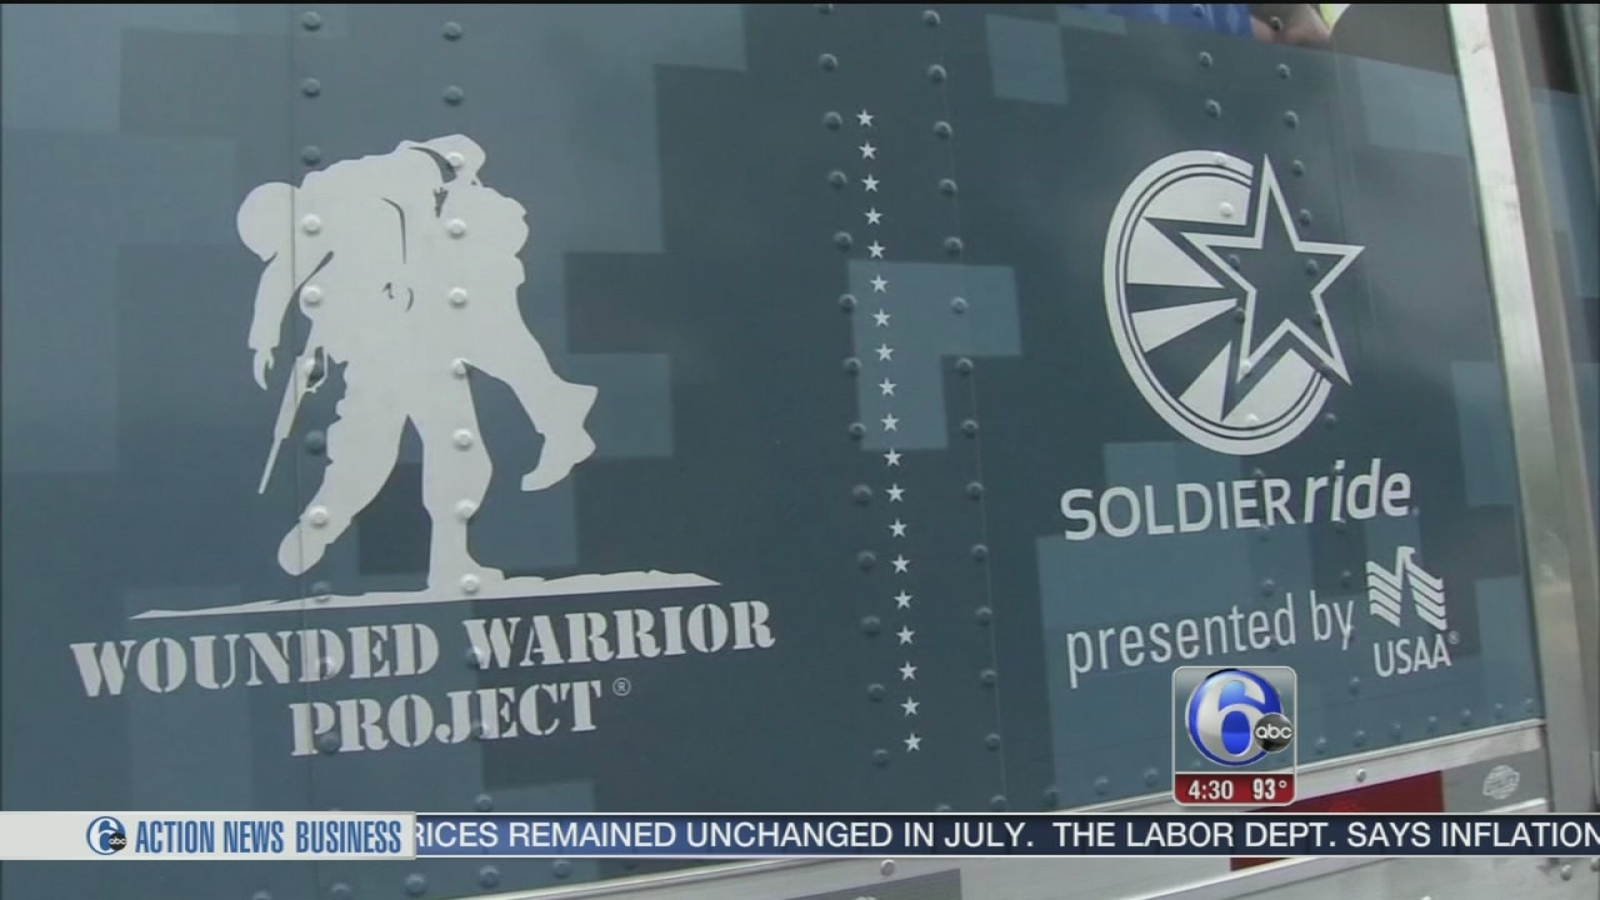 $40,000 worth of gear stolen from Wounded Warriors